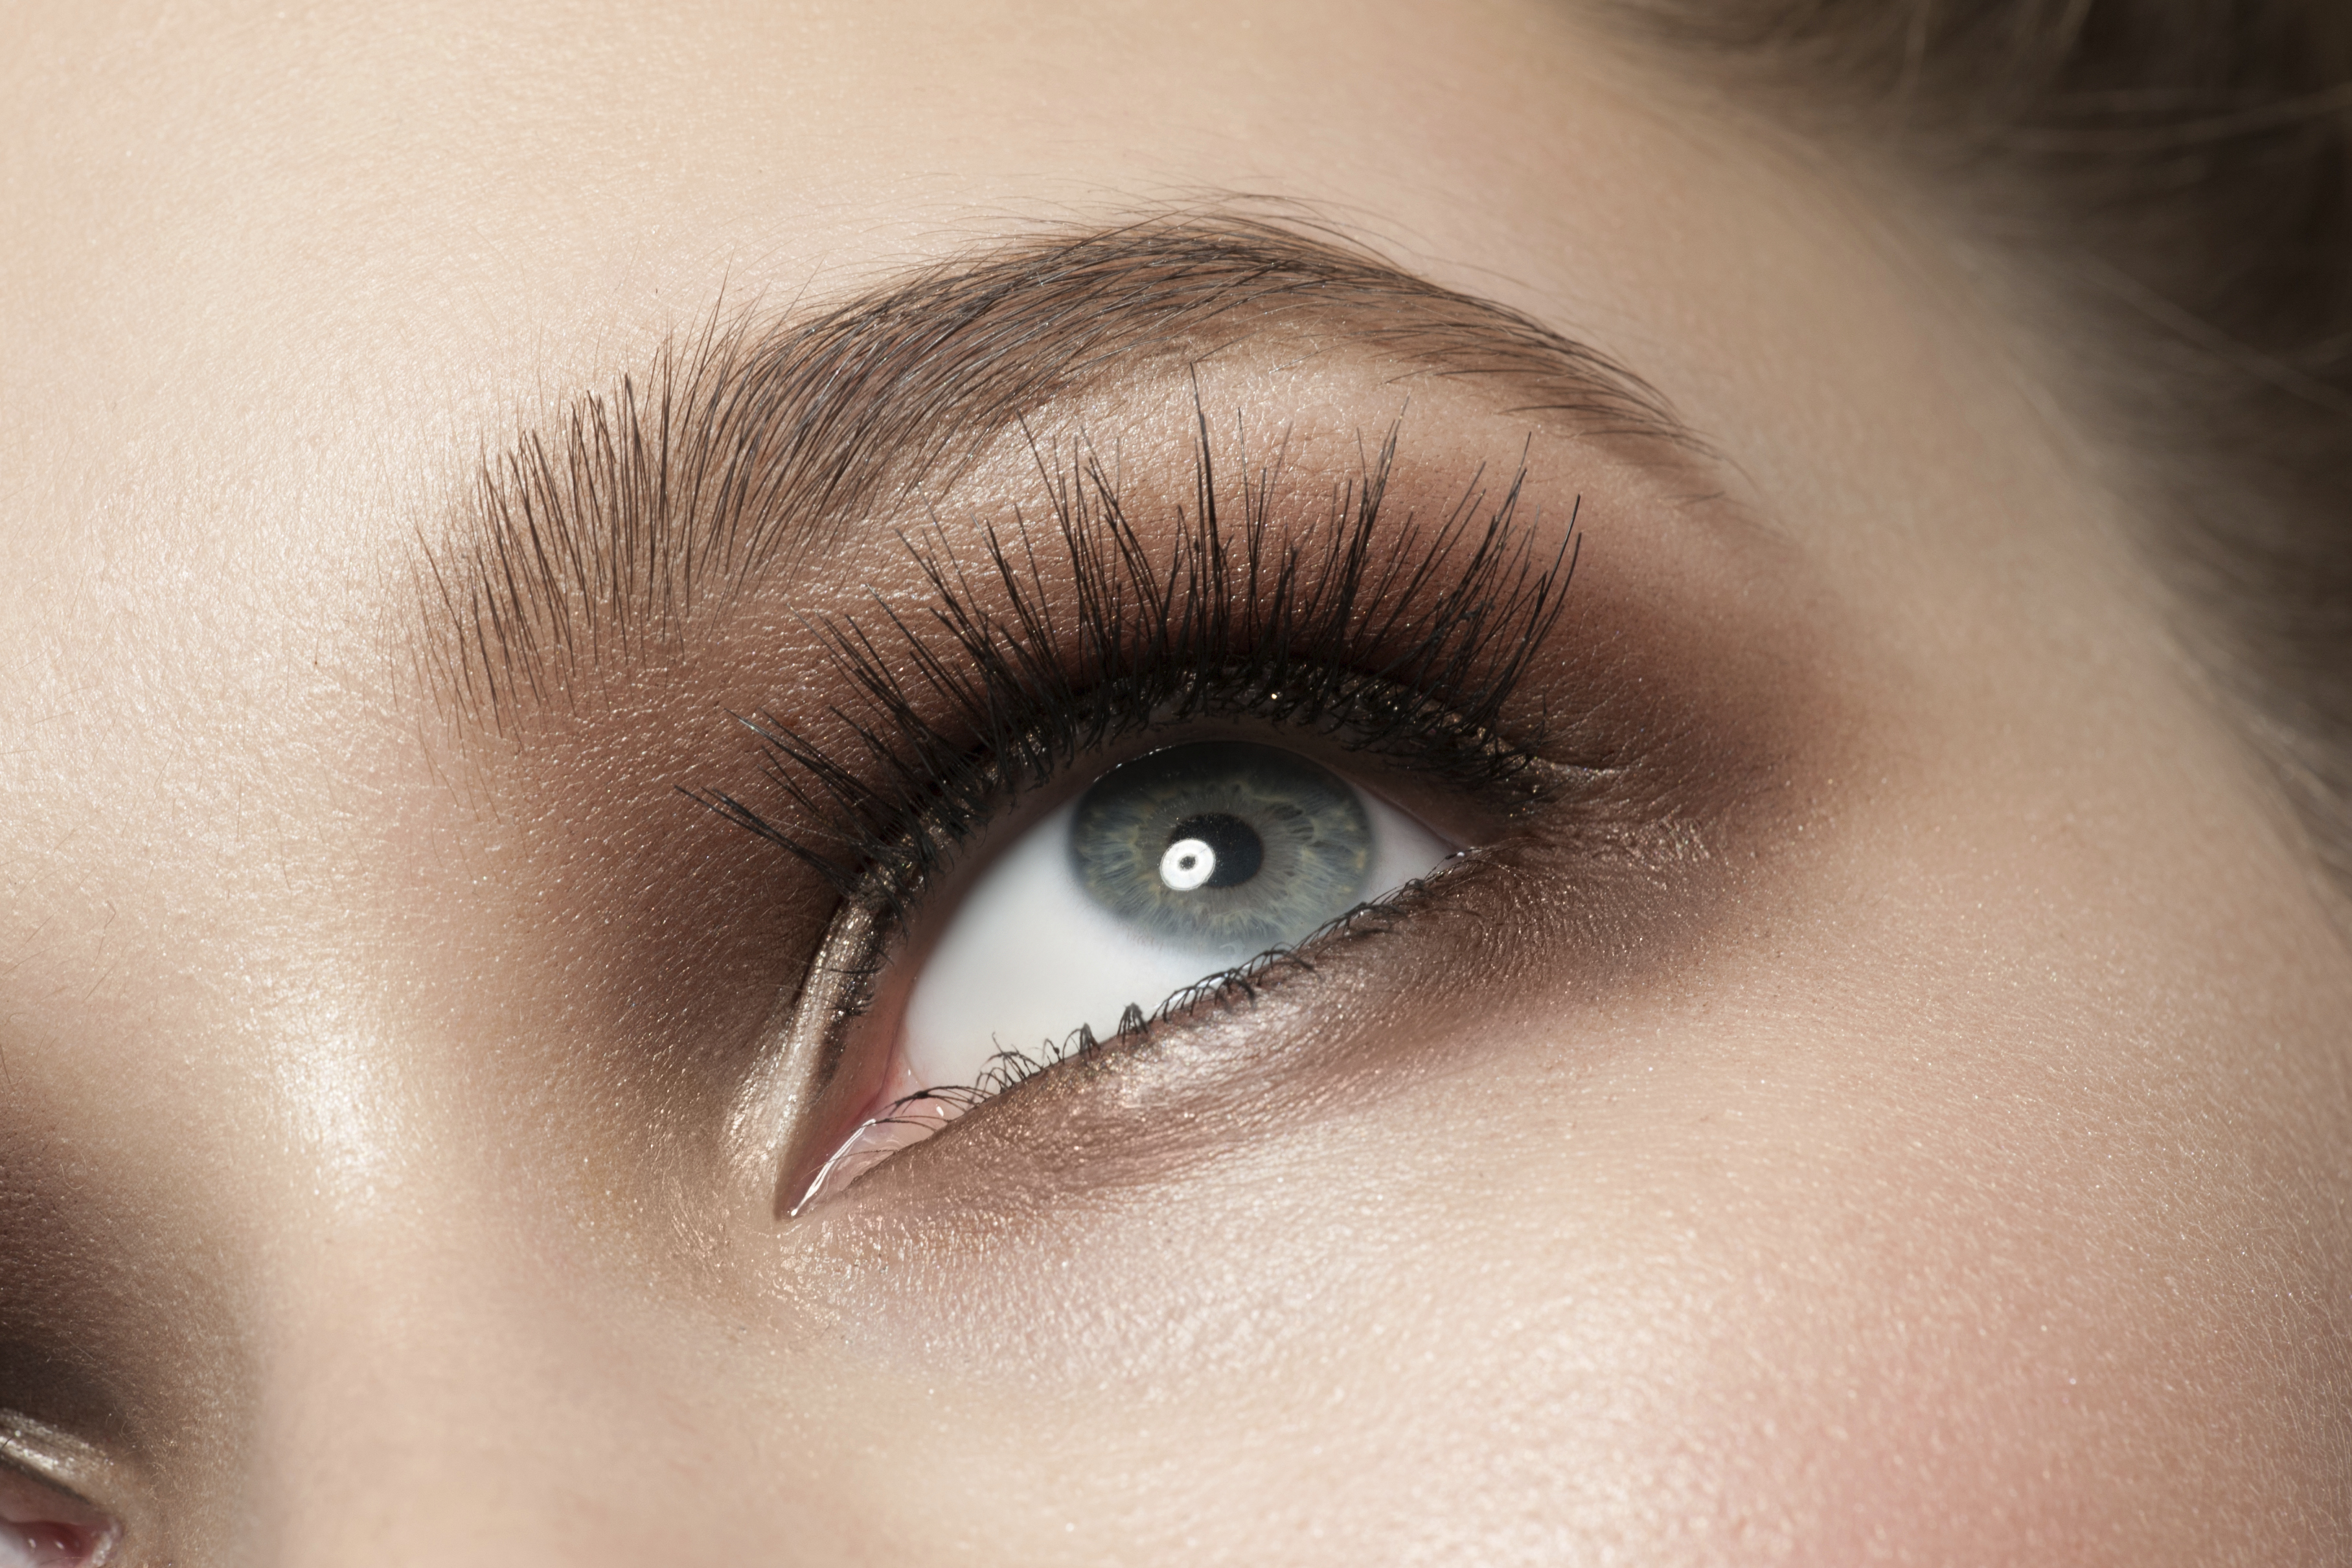 How To Treat Eyebrow Wax Burns Our Everyday Life